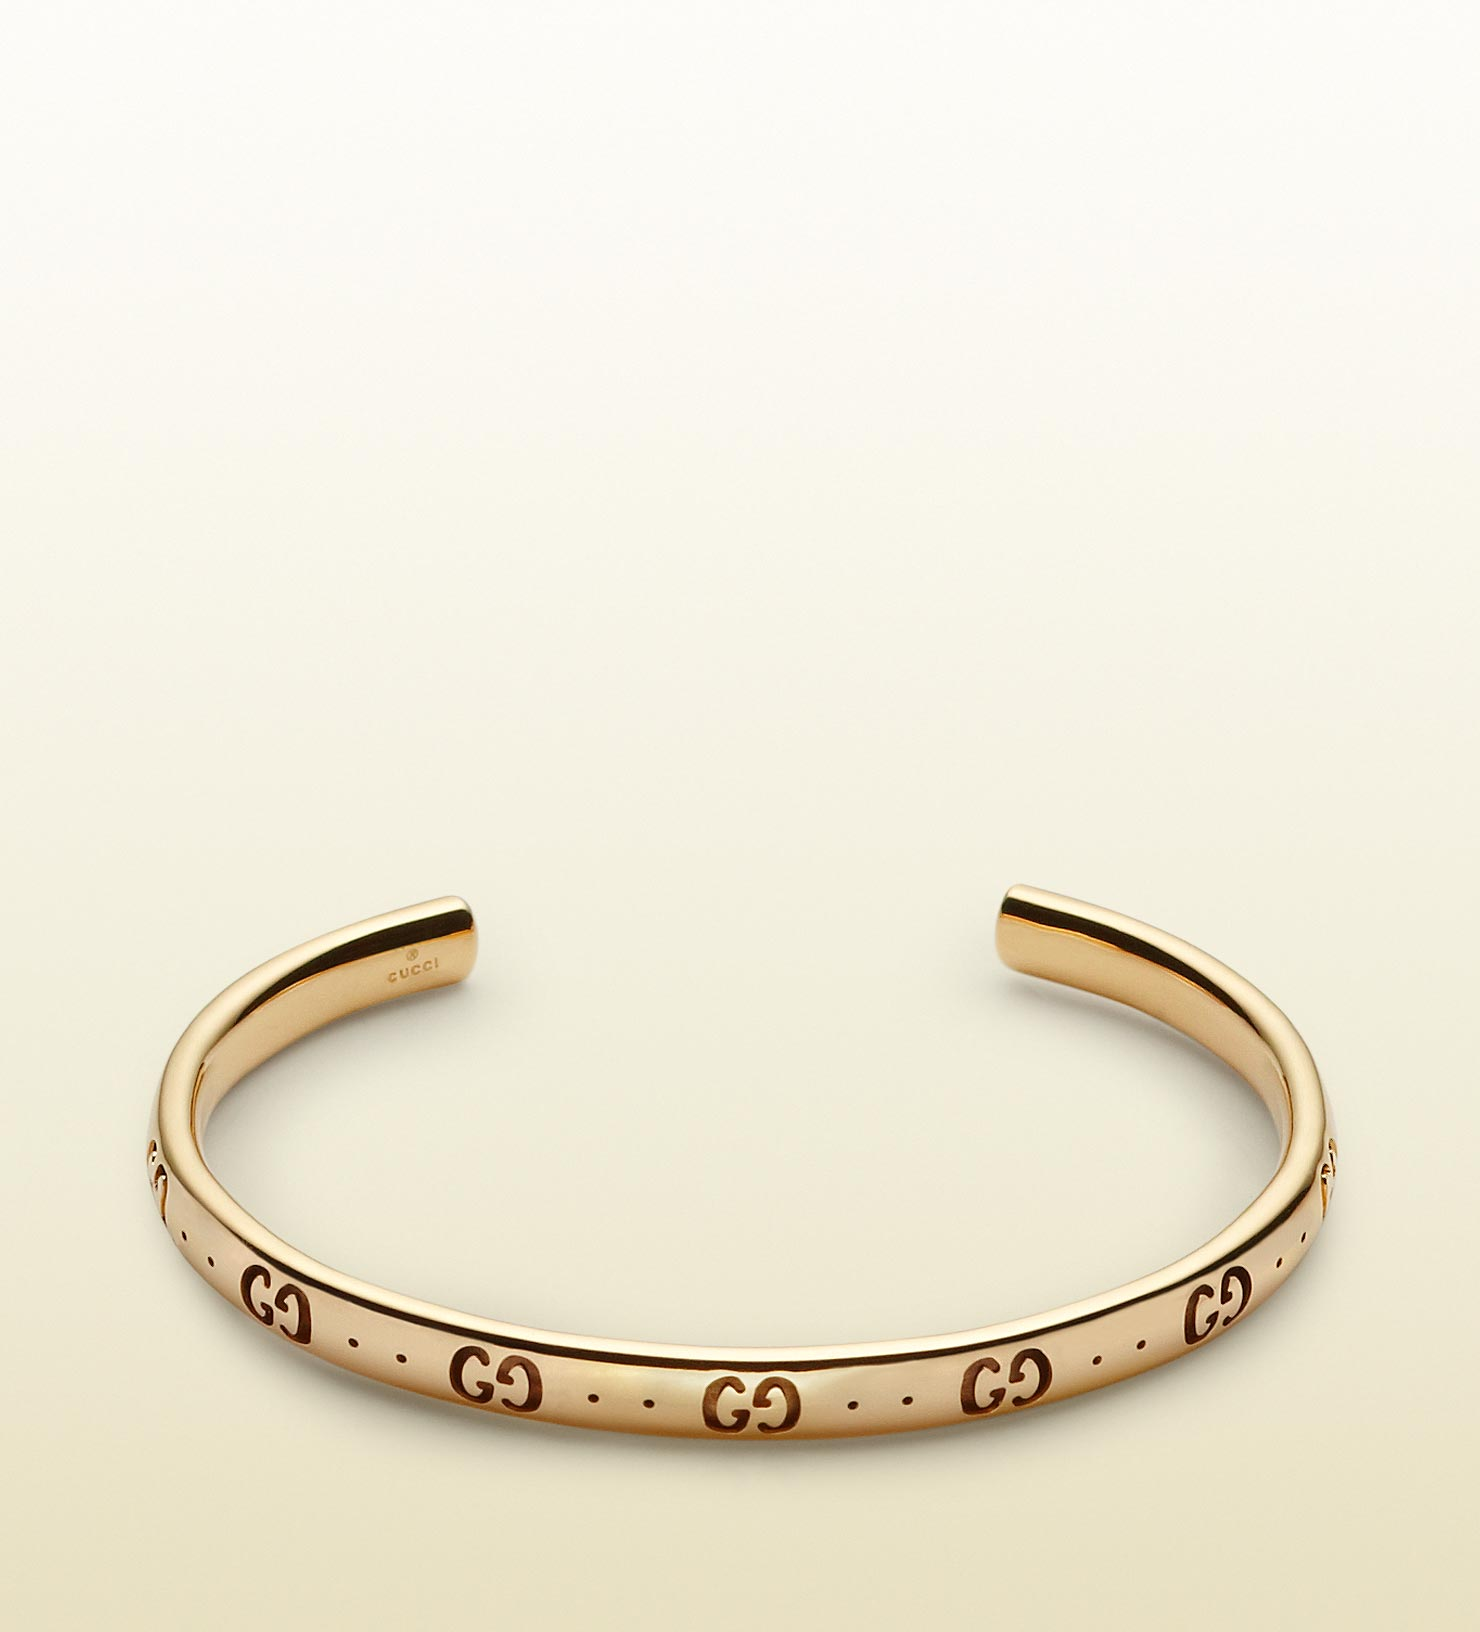 8ee294a71 All Of The Live Forever | Gucci Bracelet Cuff